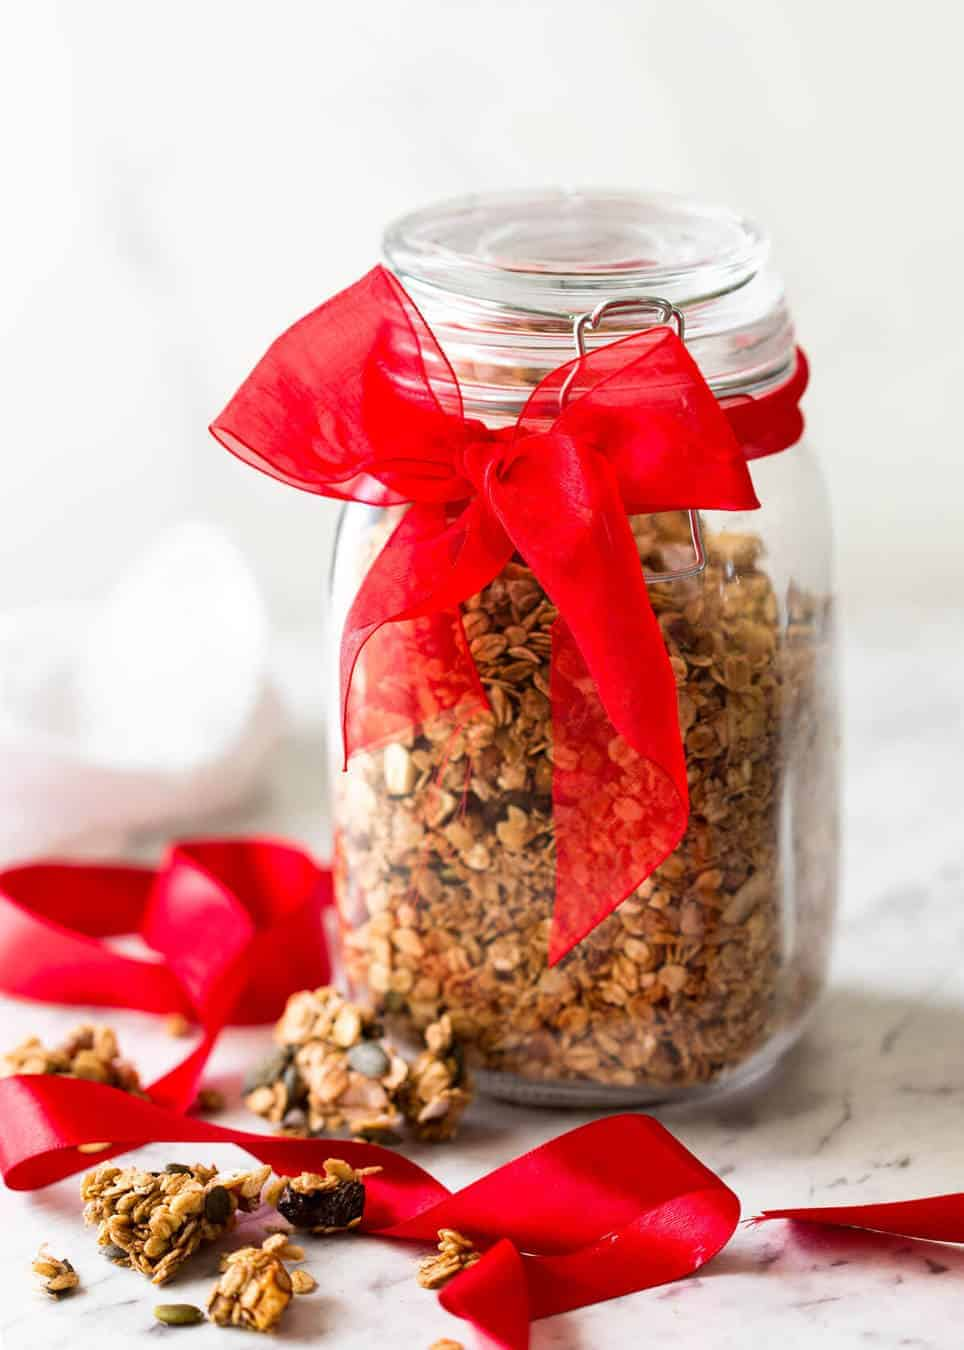 Build Your Own - Healthy Homemade Granola - Easy Food Gift Idea recipetineats.com